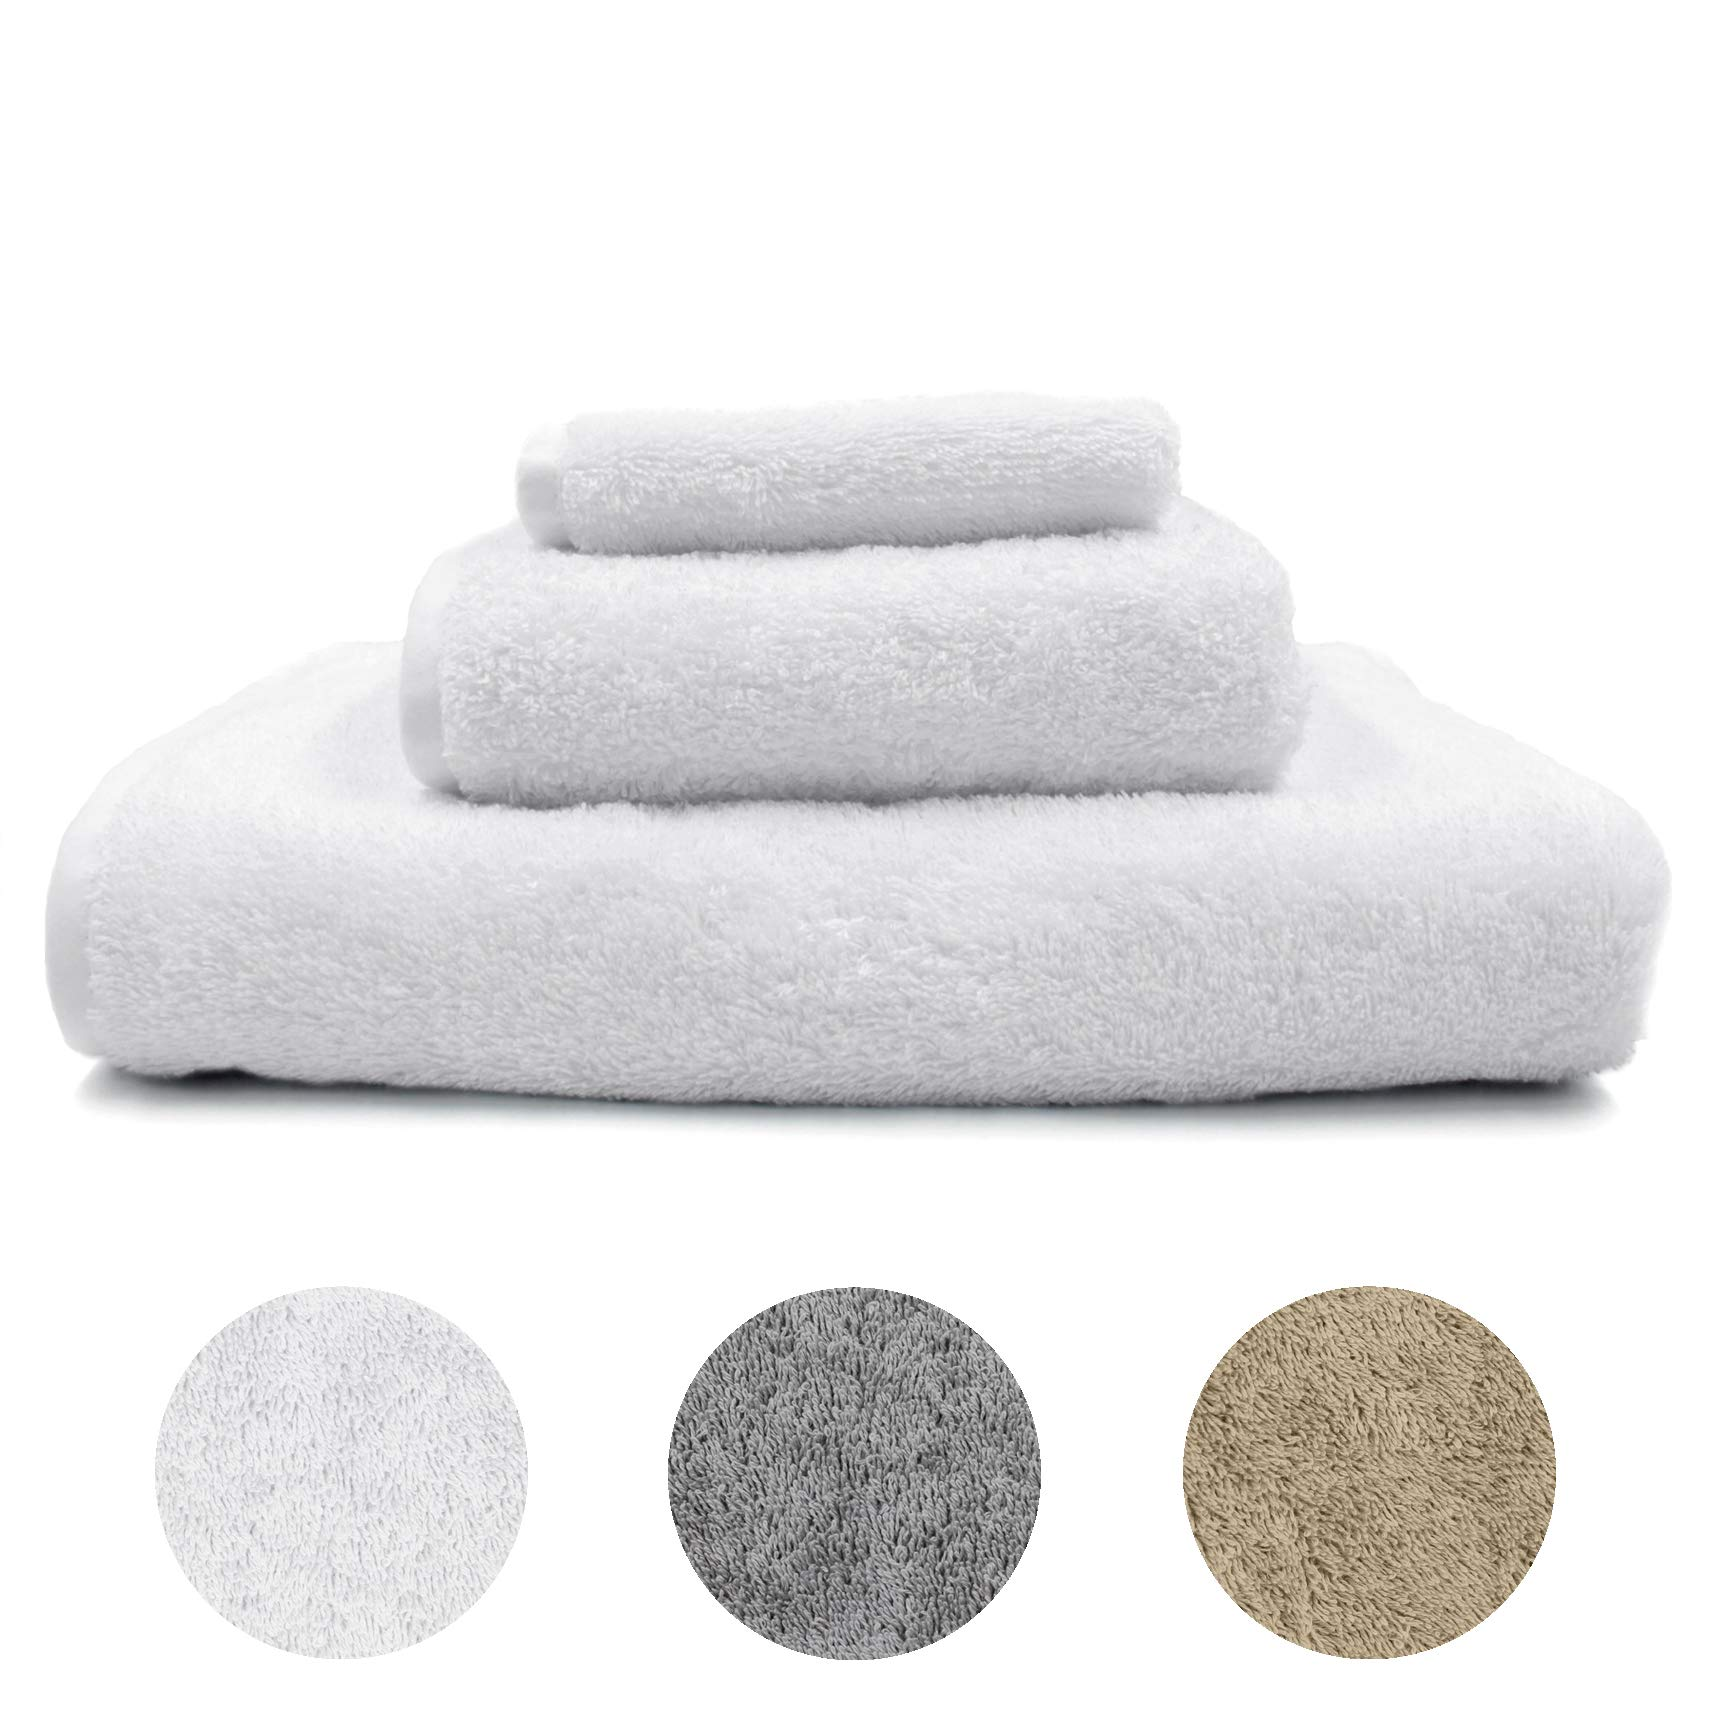 """Winter Park Royal Supima Cotton Bath Towel Measuring 30"""" by 60"""", White - 700 GSM - Grown by American Farmers, Ultra Plush, Absorbent and Durable. A High-End Hotel/Spa Quality Cotton Towel"""